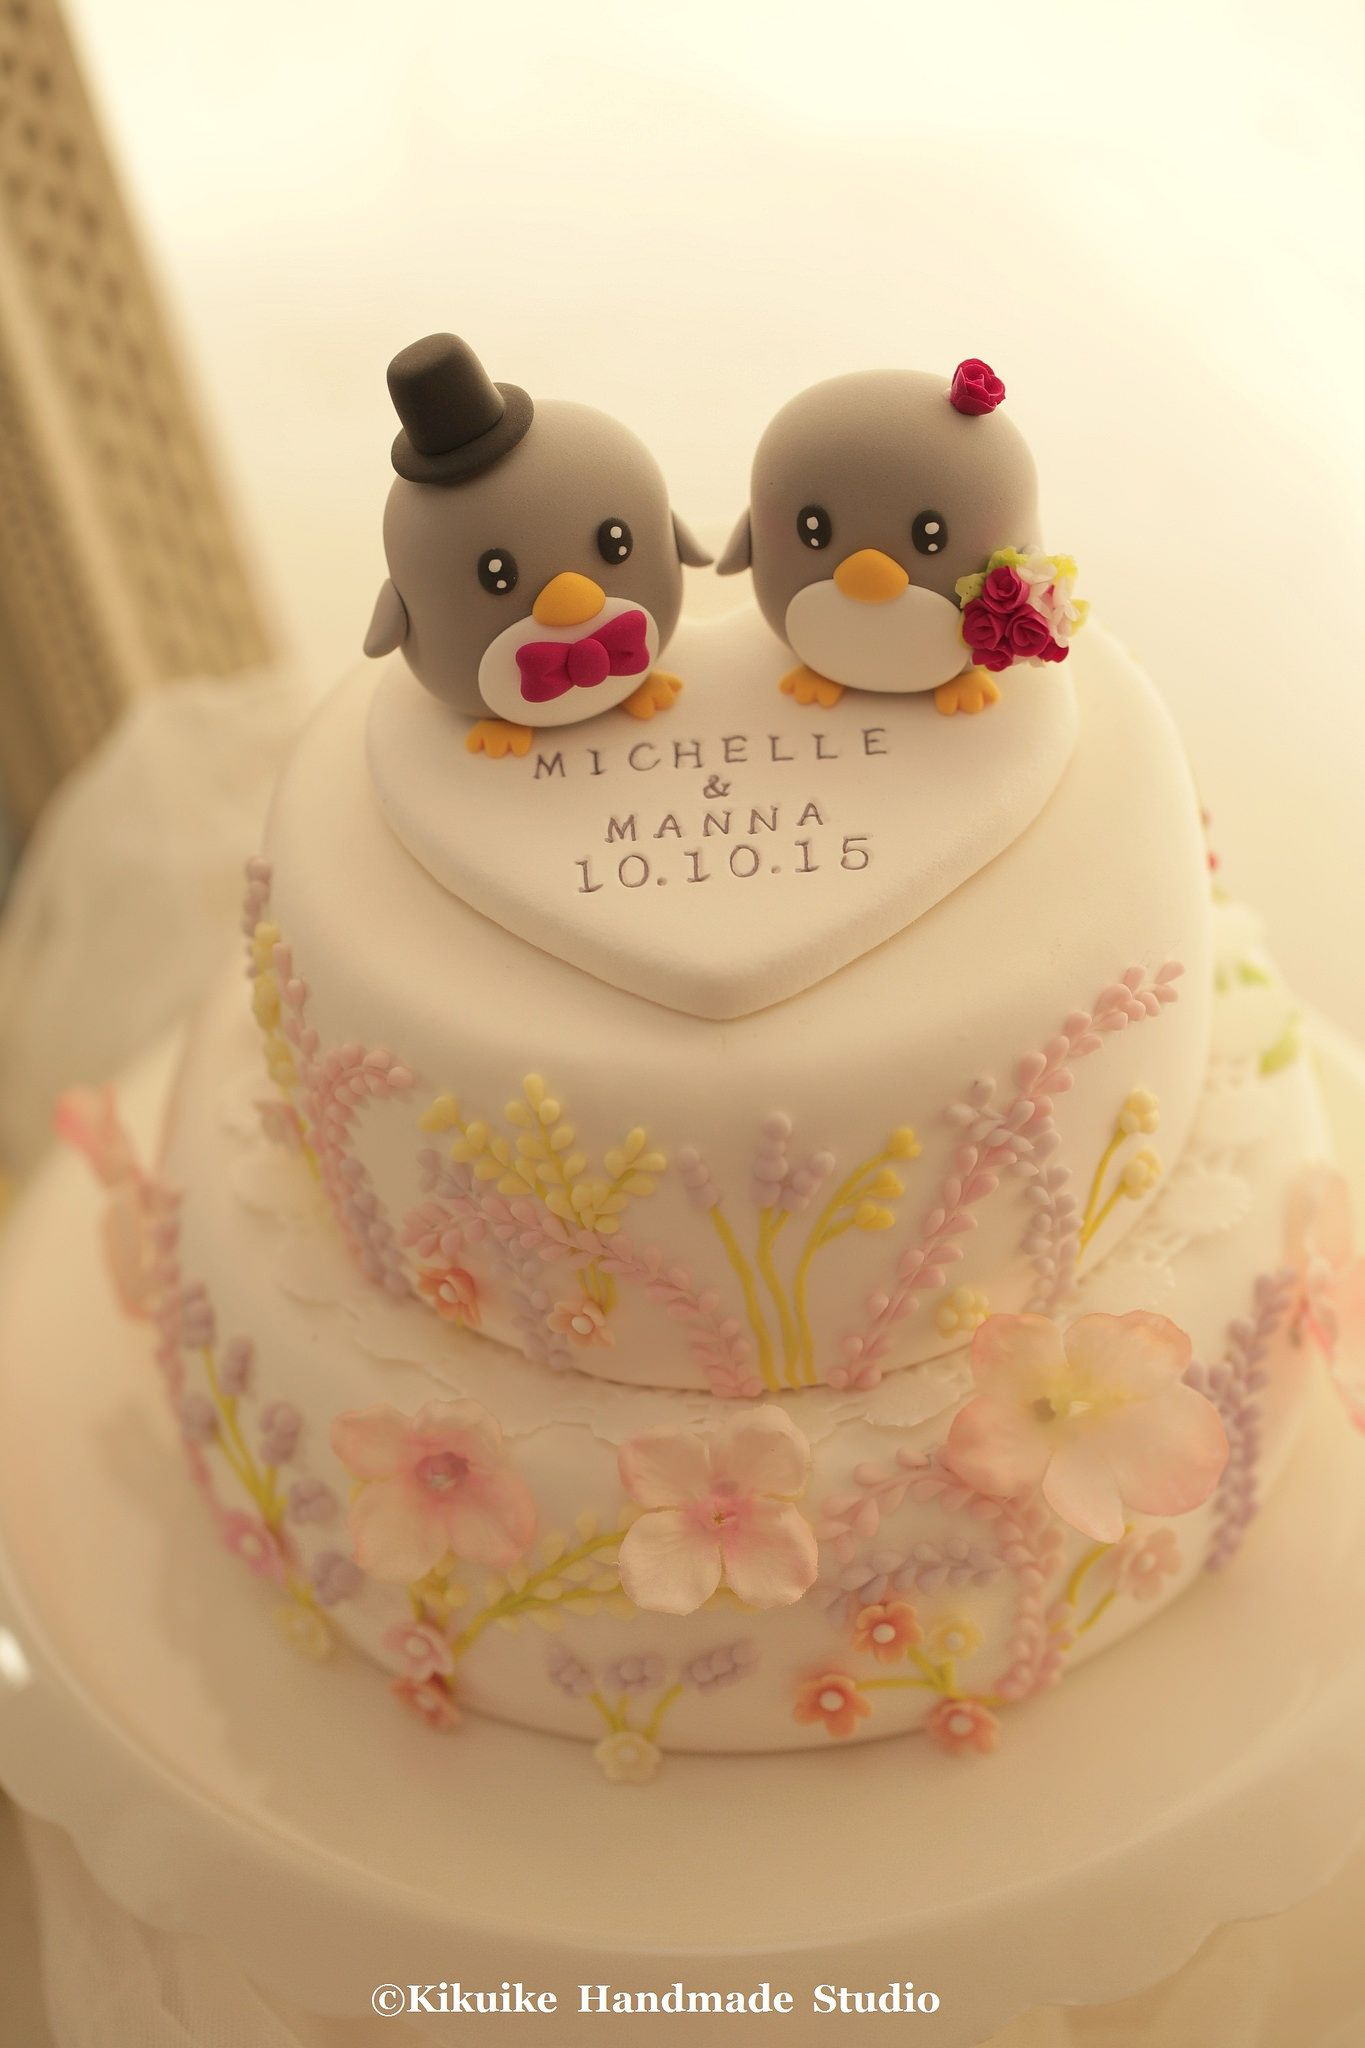 penguins bride and groom Wedding Cake Topper | Wedding Cake ...